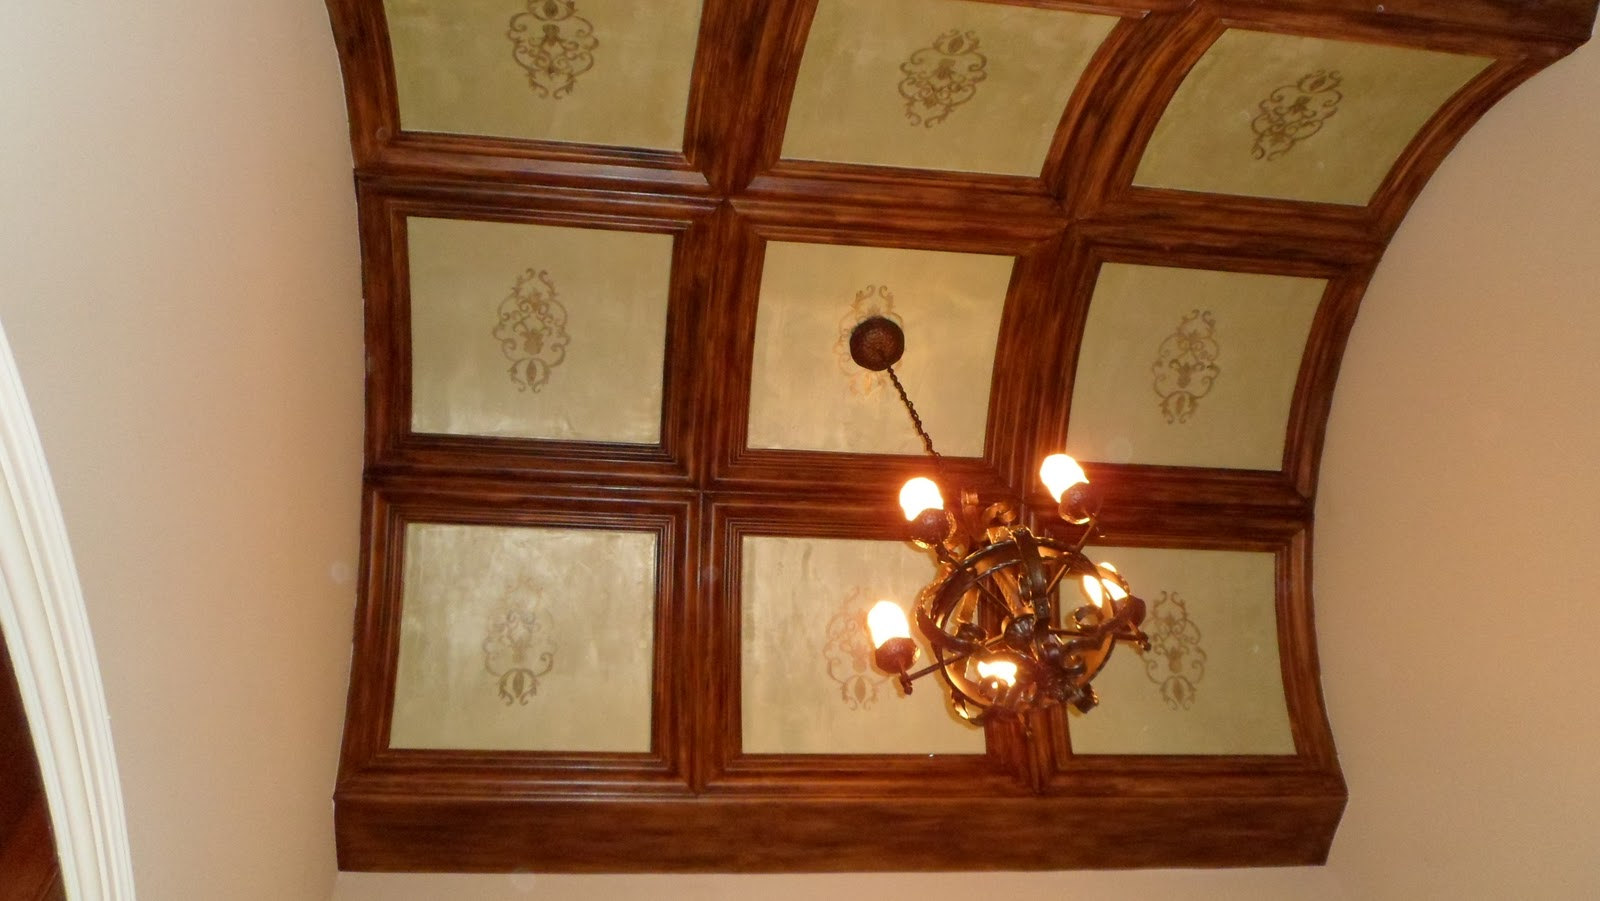 Foyer Plaster Ceiling : Savard studios formal room transformations final product